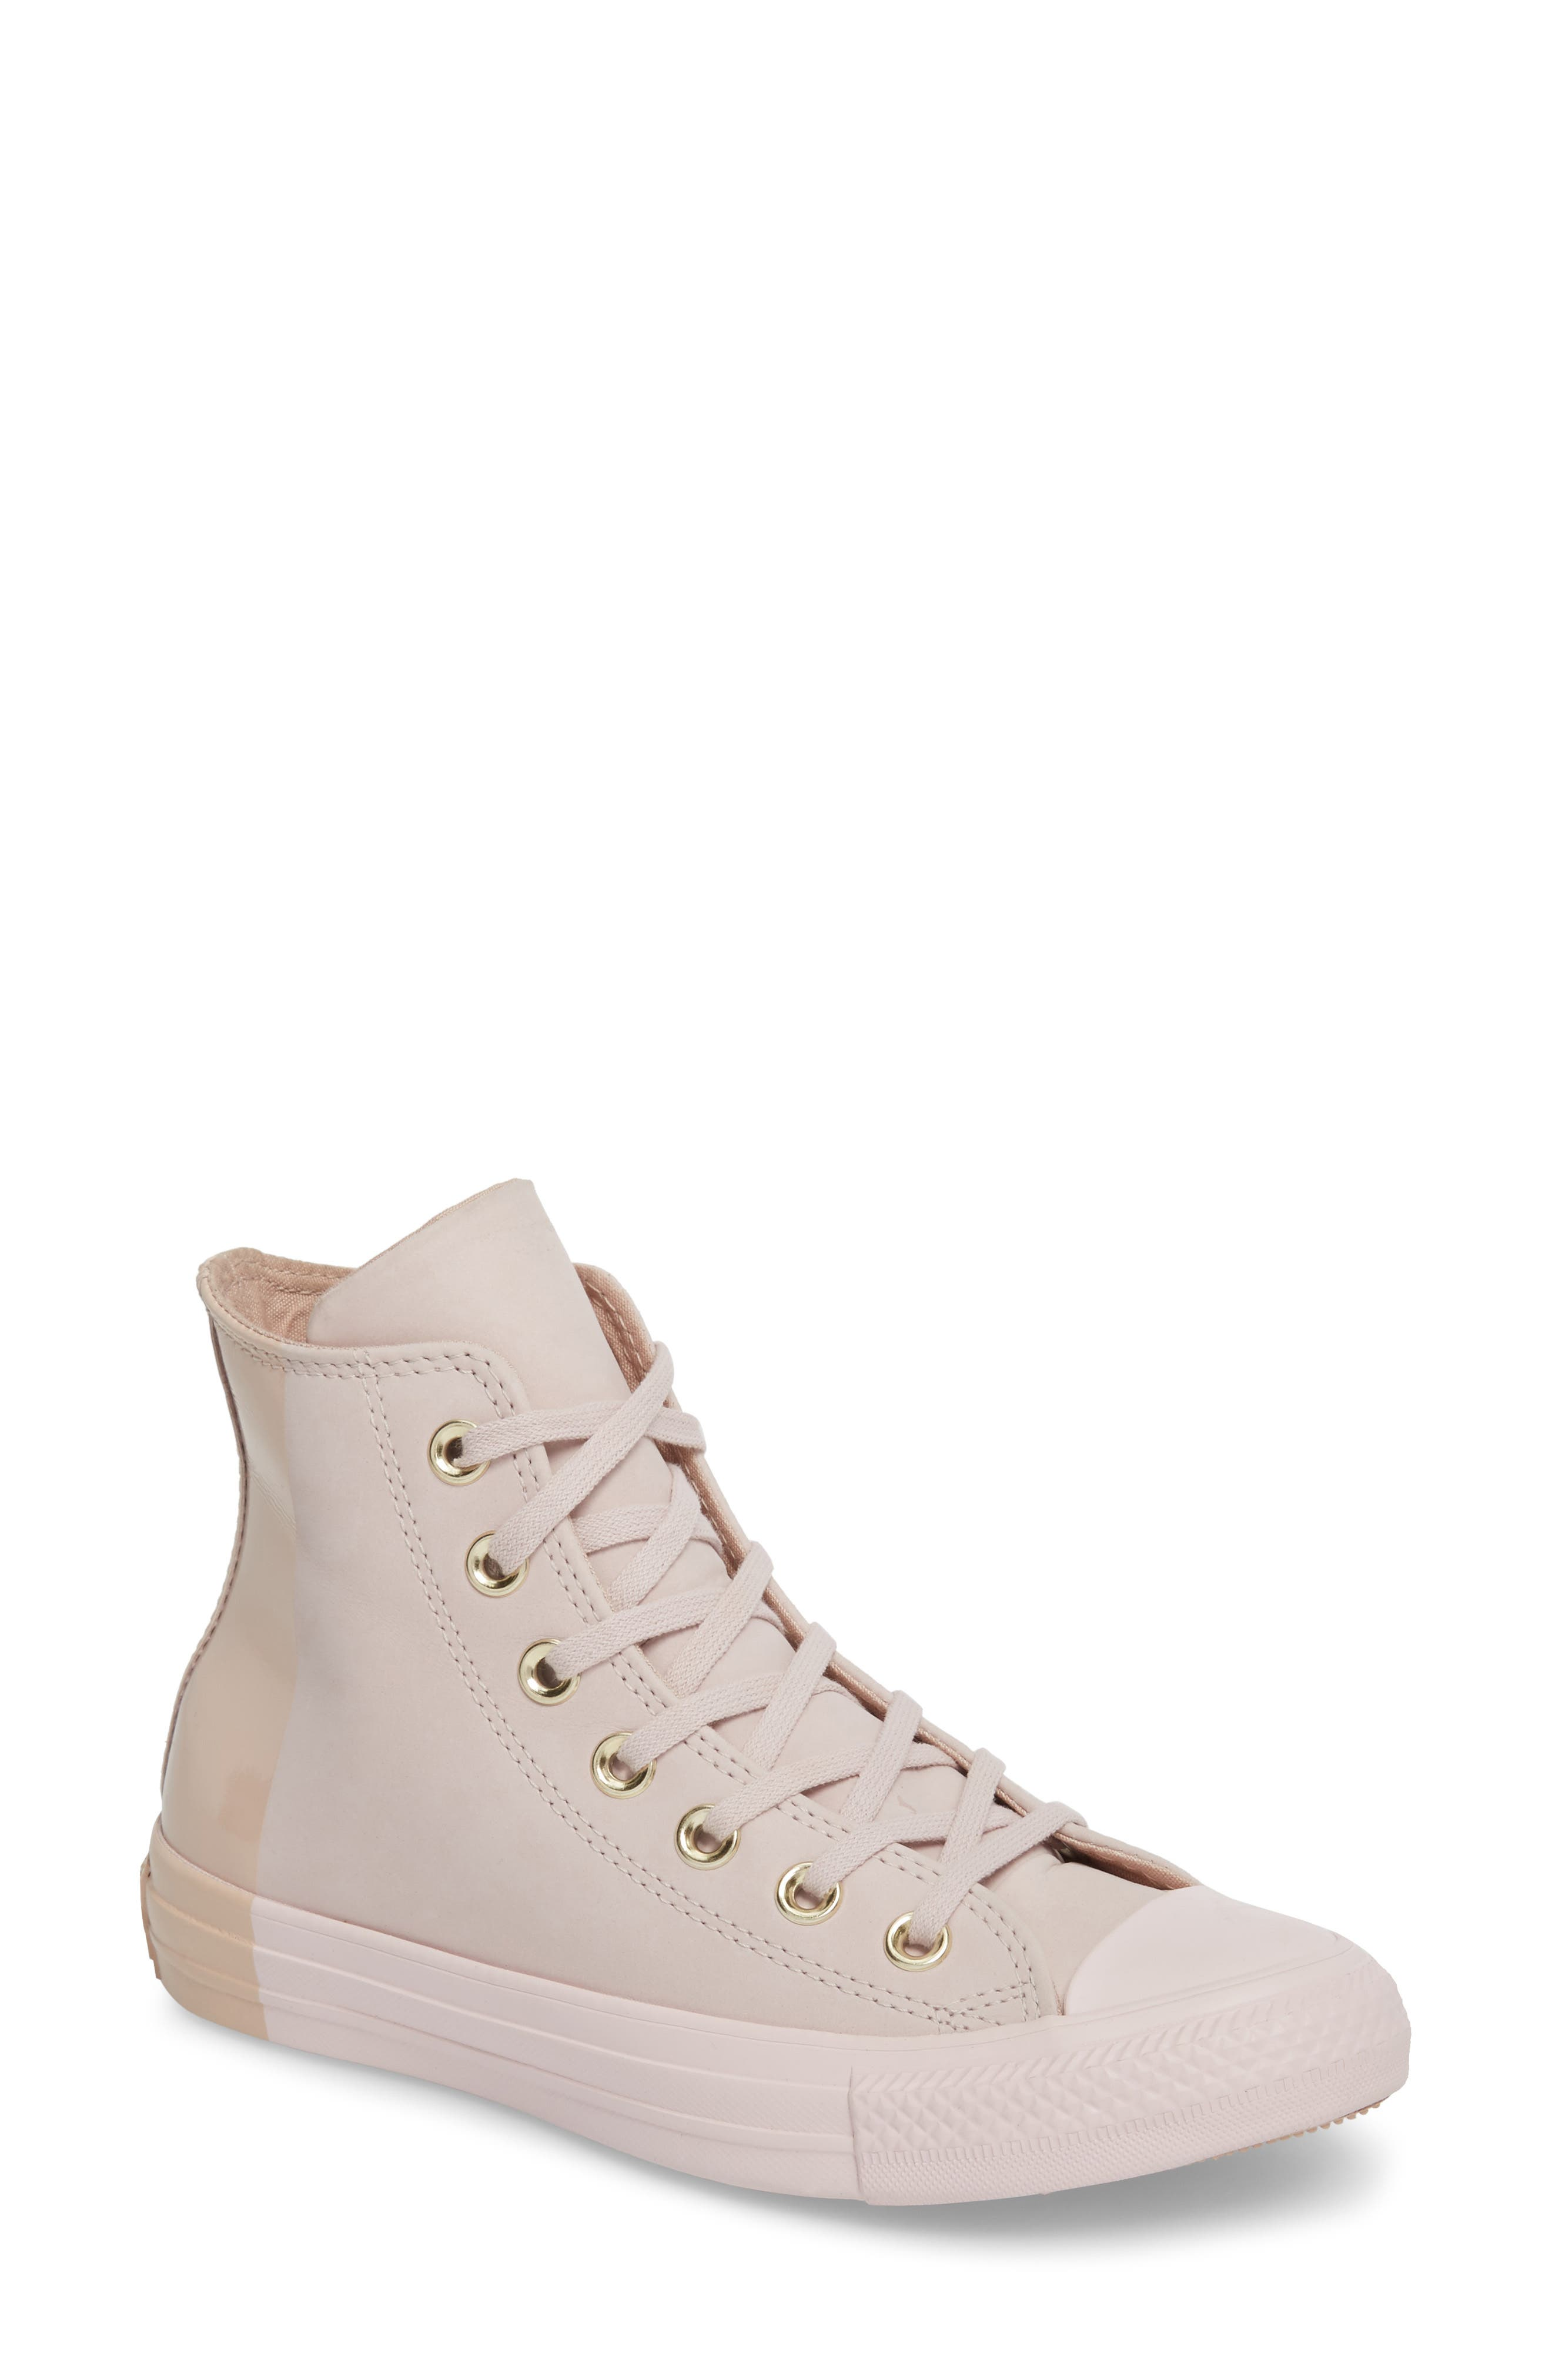 Chuck Taylor<sup>®</sup> All Star<sup>®</sup> Blocked High Top Sneaker,                             Main thumbnail 1, color,                             653